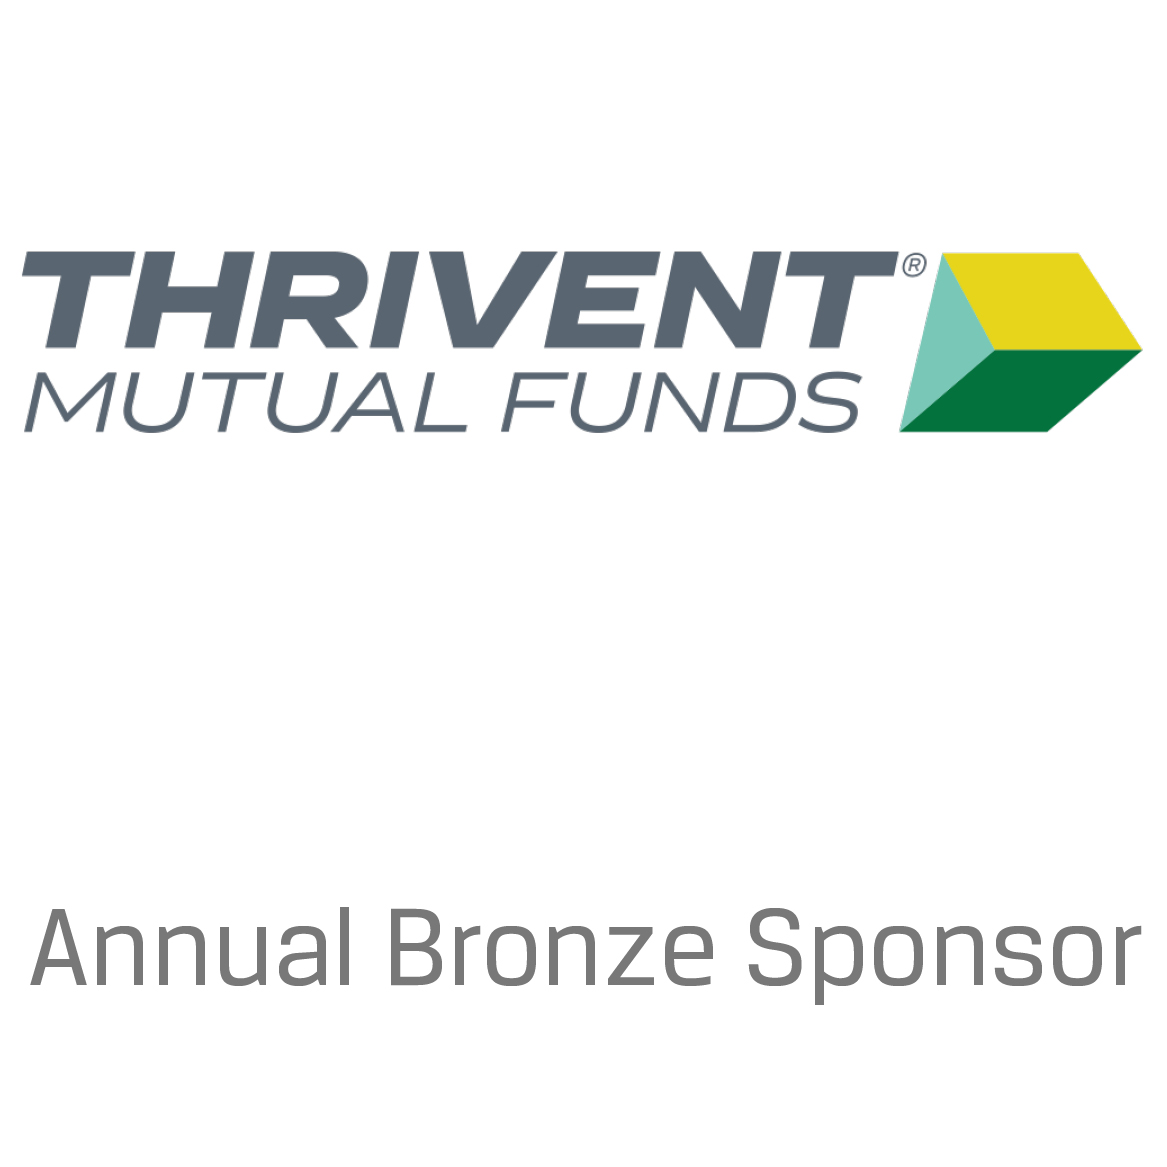 Thrivent Mutual Funds